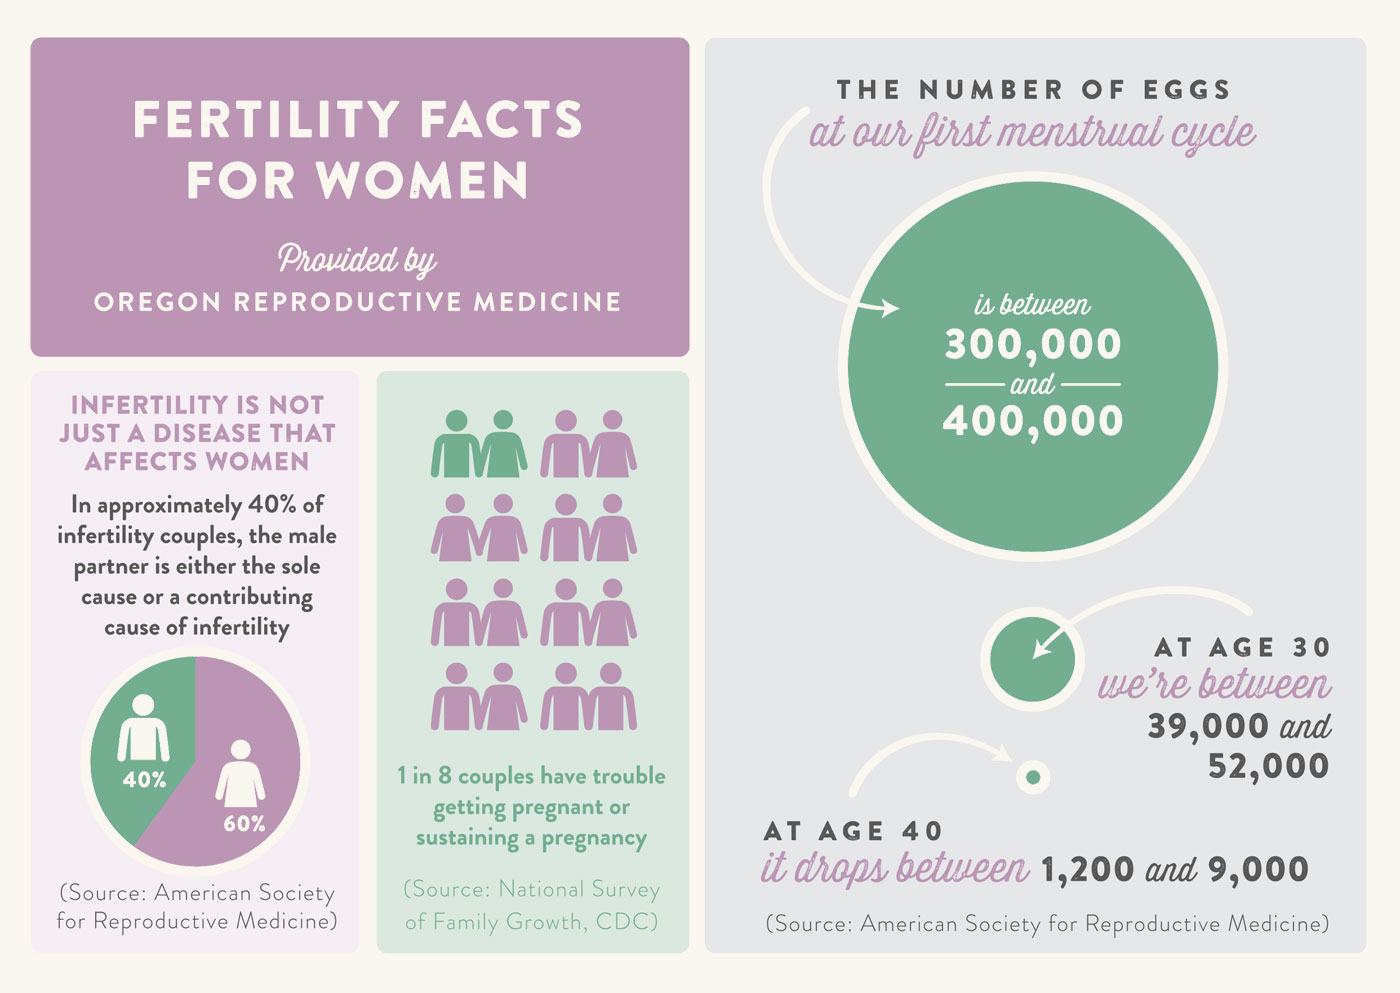 fertility facts for women